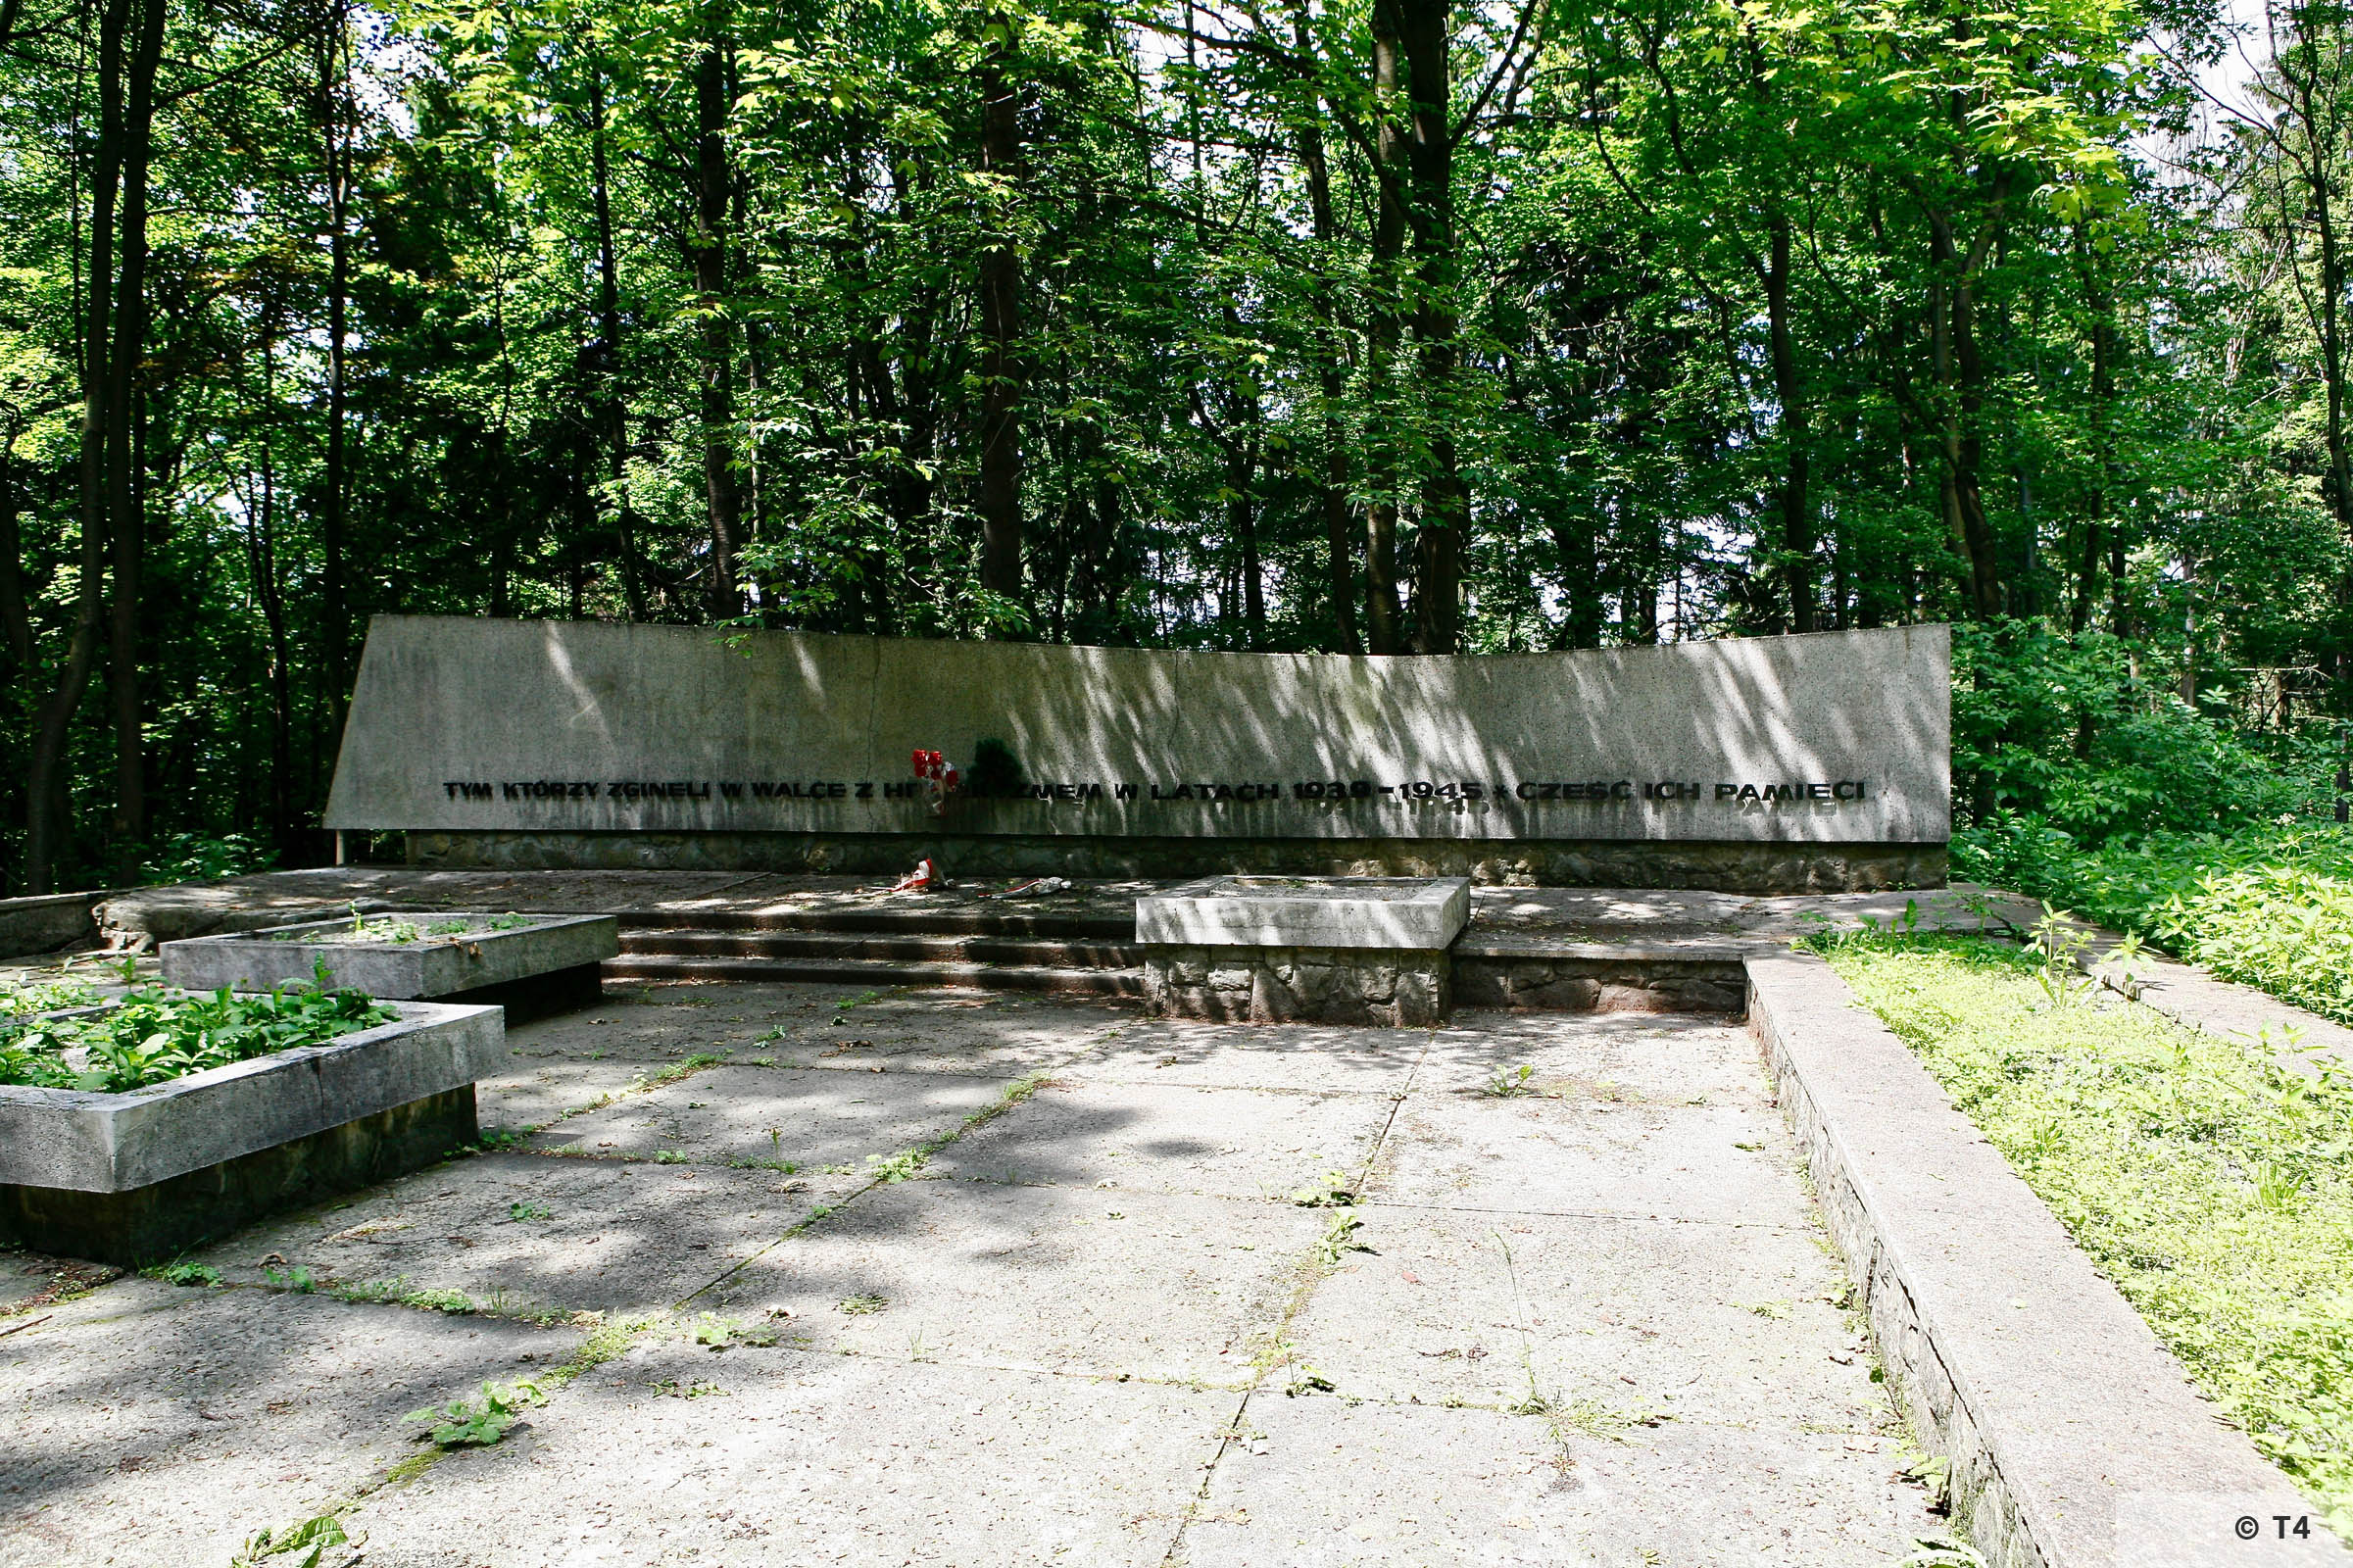 Memorial to victims of Nazi war crimes in Goleszow 1939-1945 2006 T4 6639